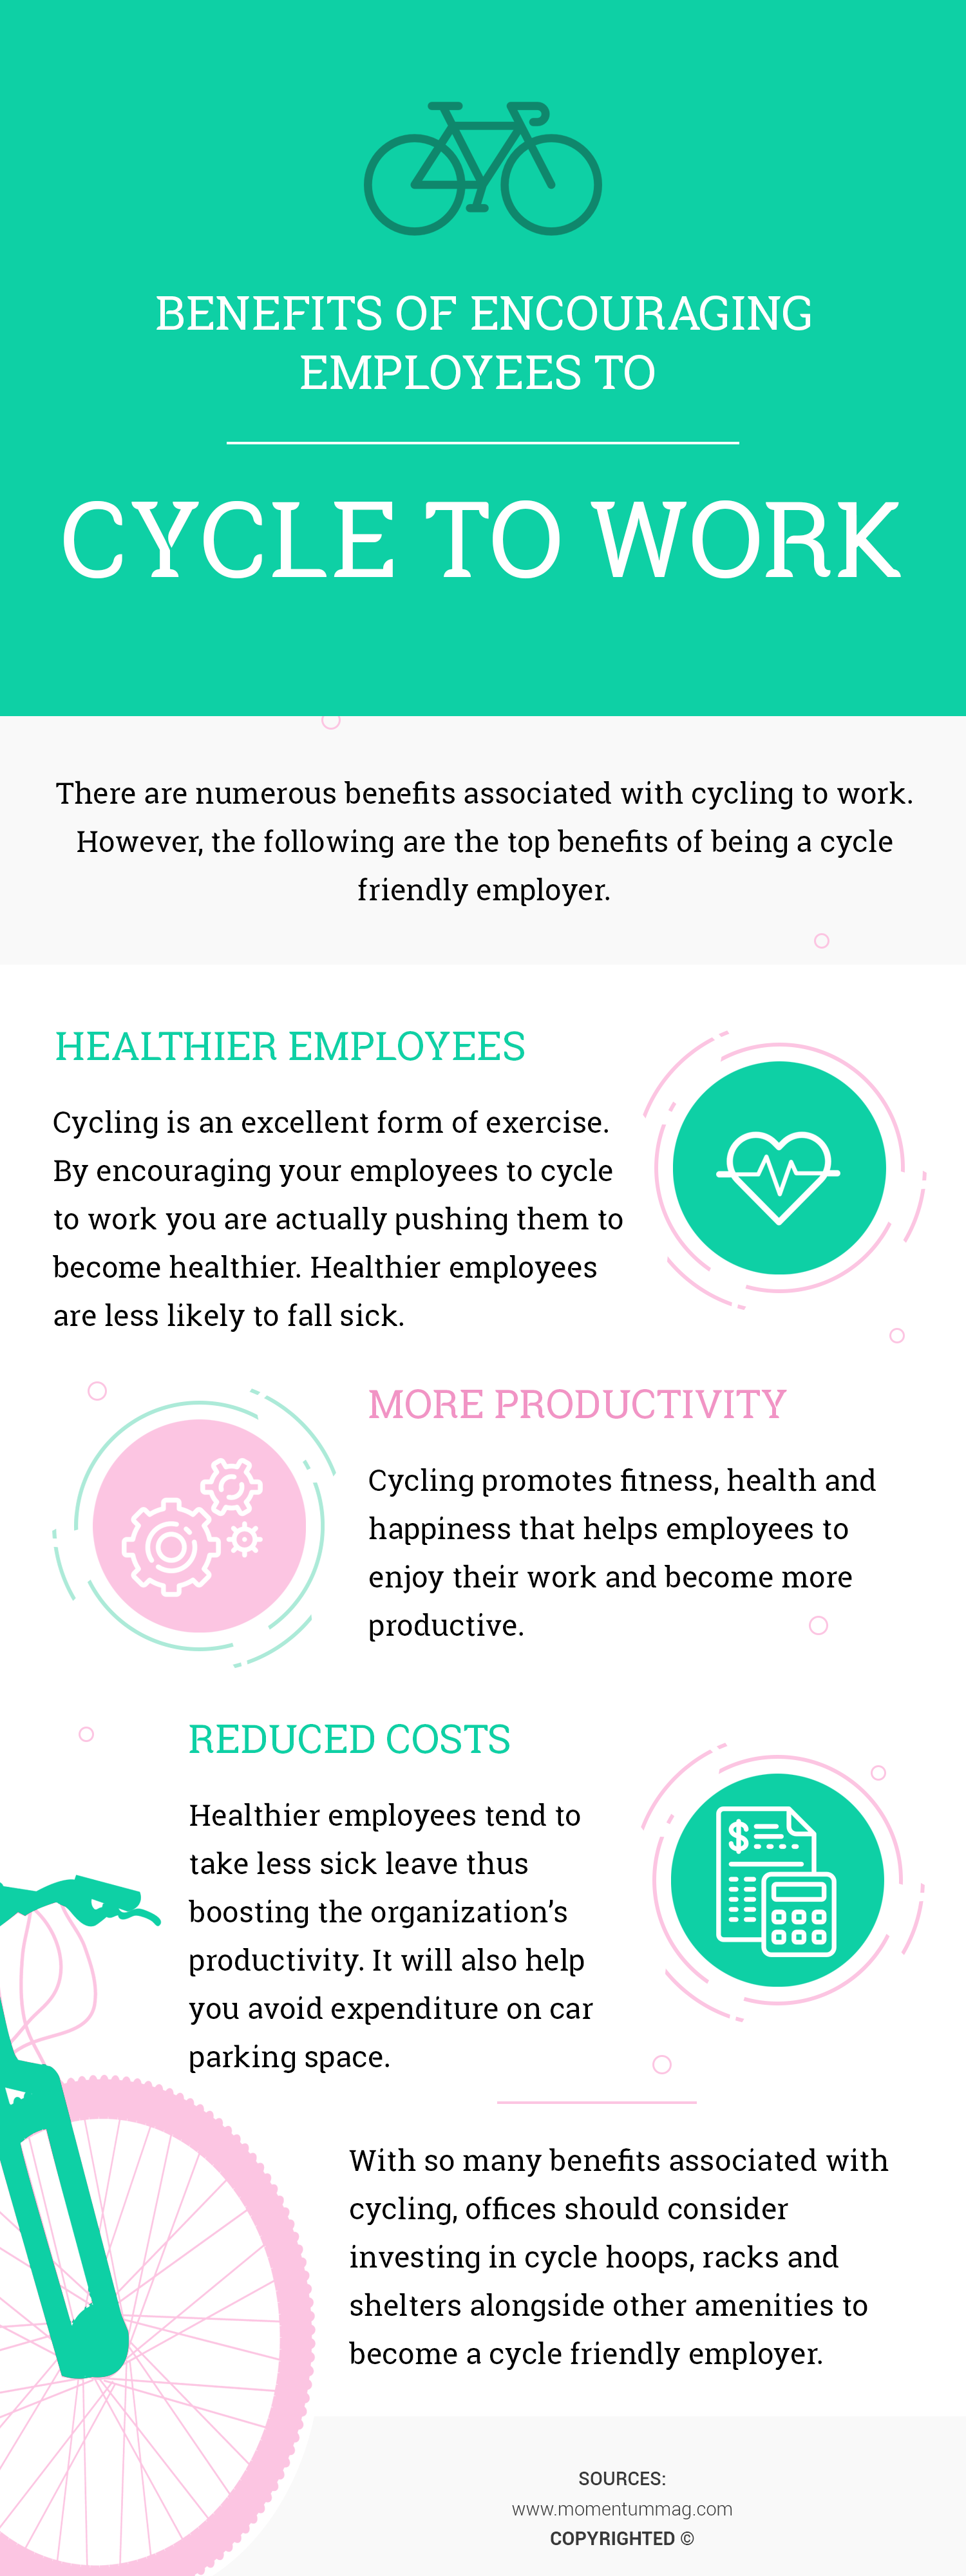 Why You Should Encourage Your Employees to Cycle to Work? Infographic